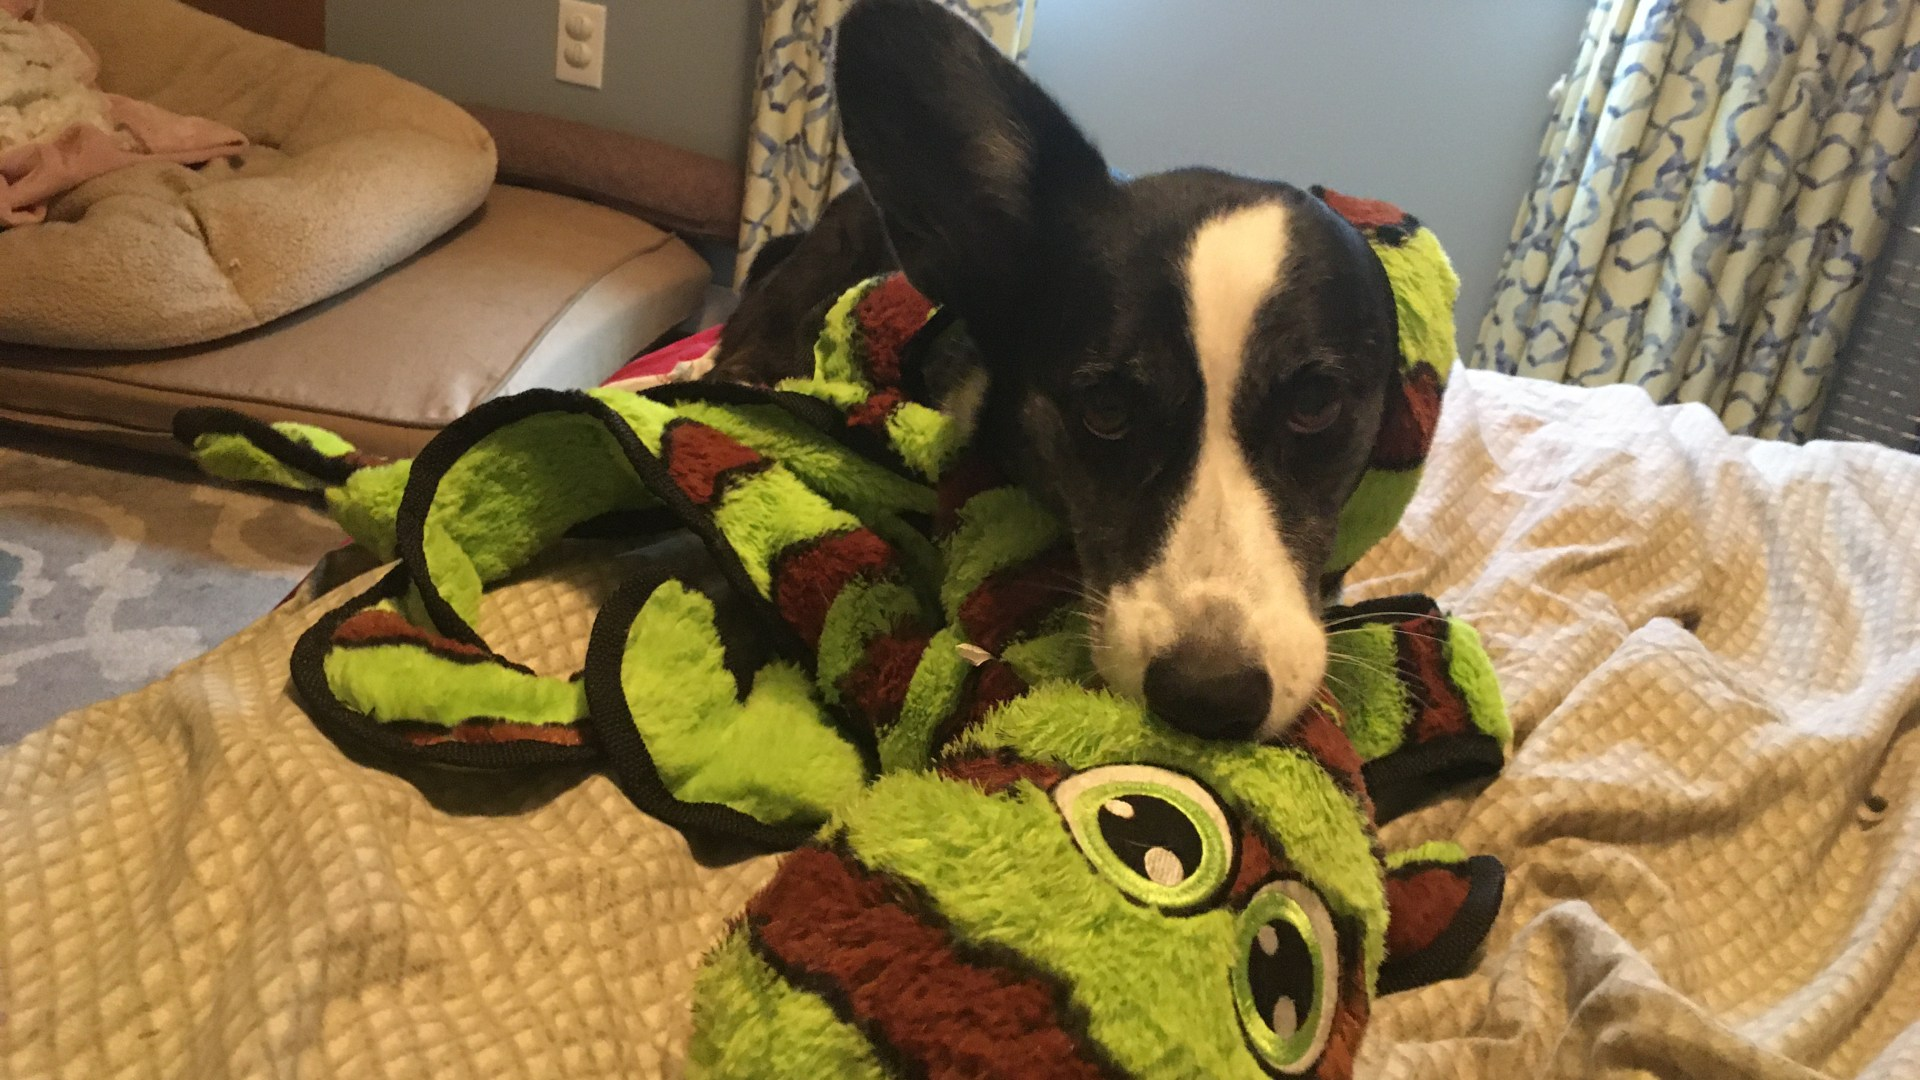 black and white corgi with a green and brown octopus toy wrapped around her head